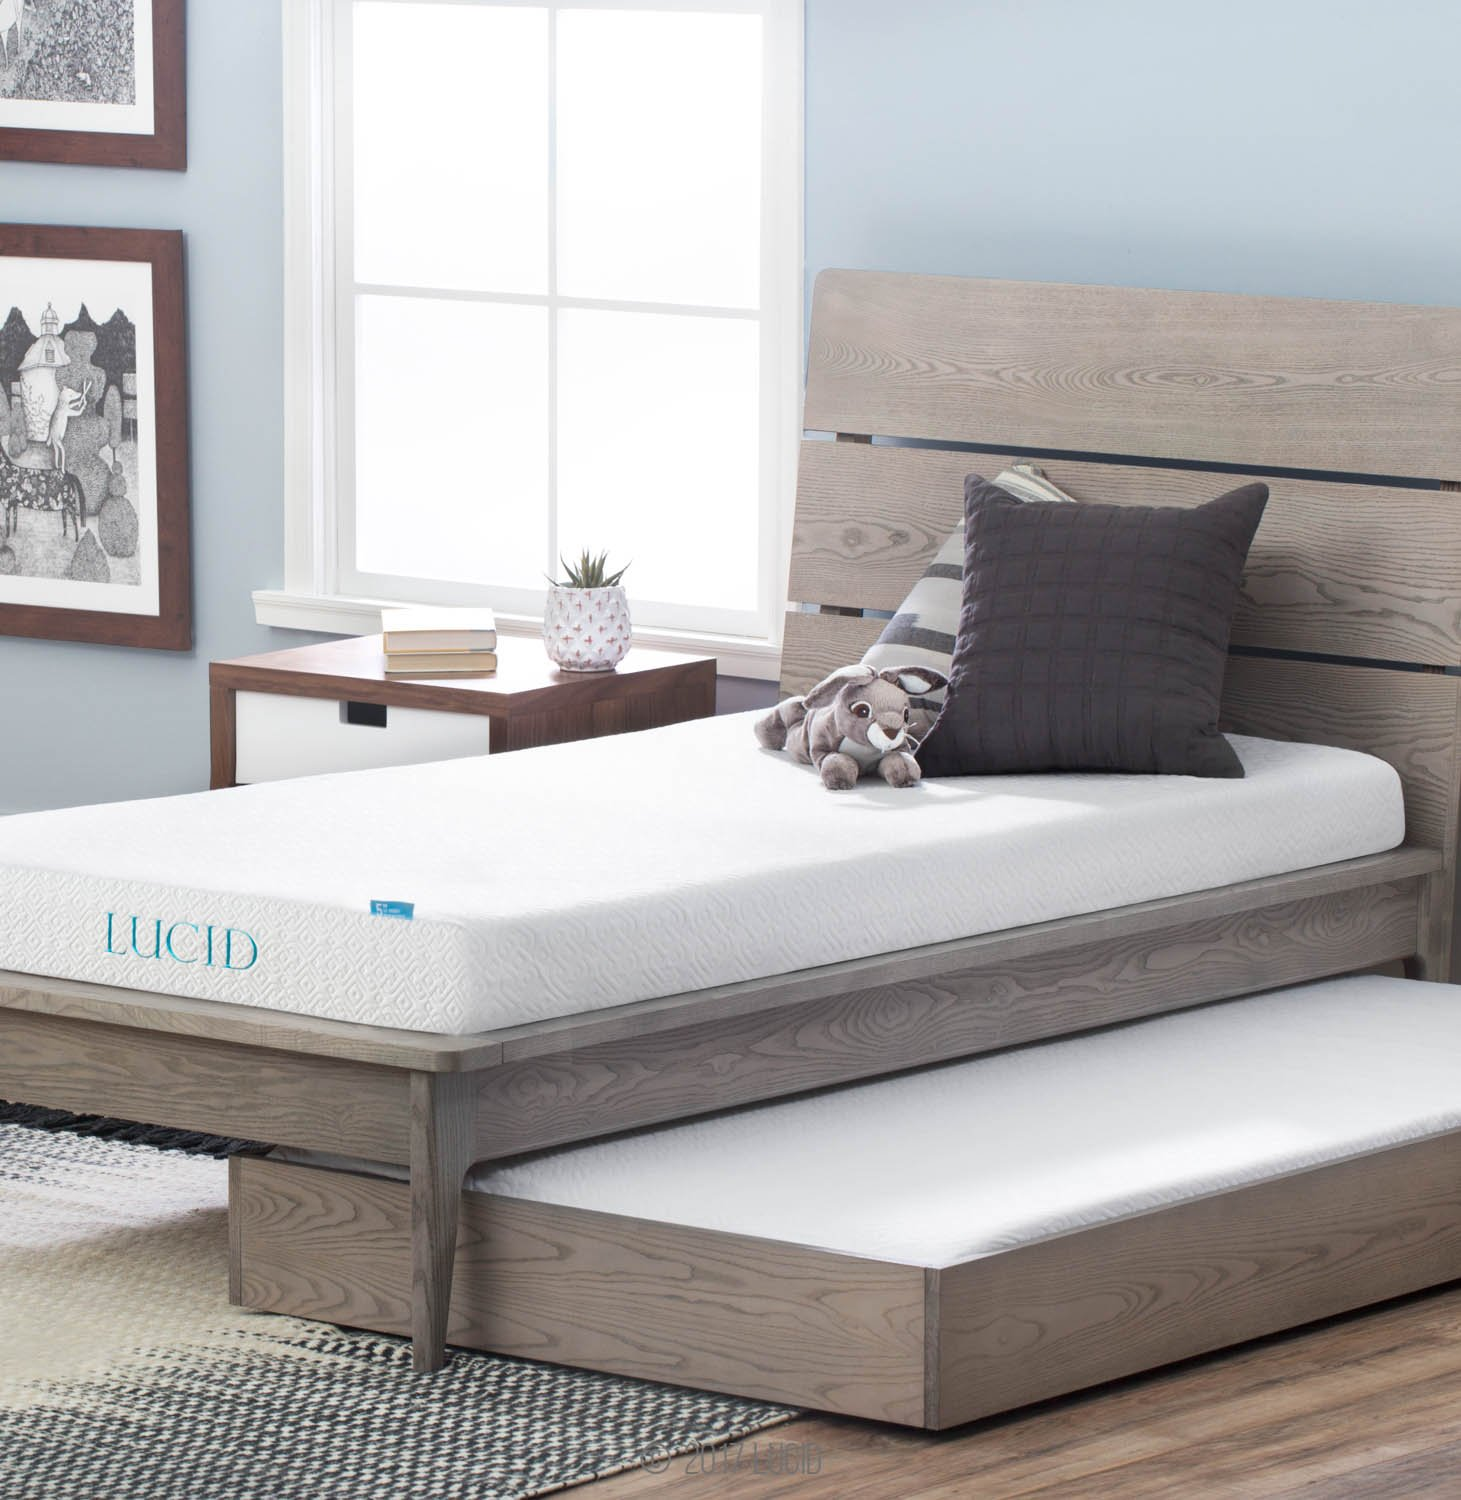 CertiPUR-US Certified Lucid mattress